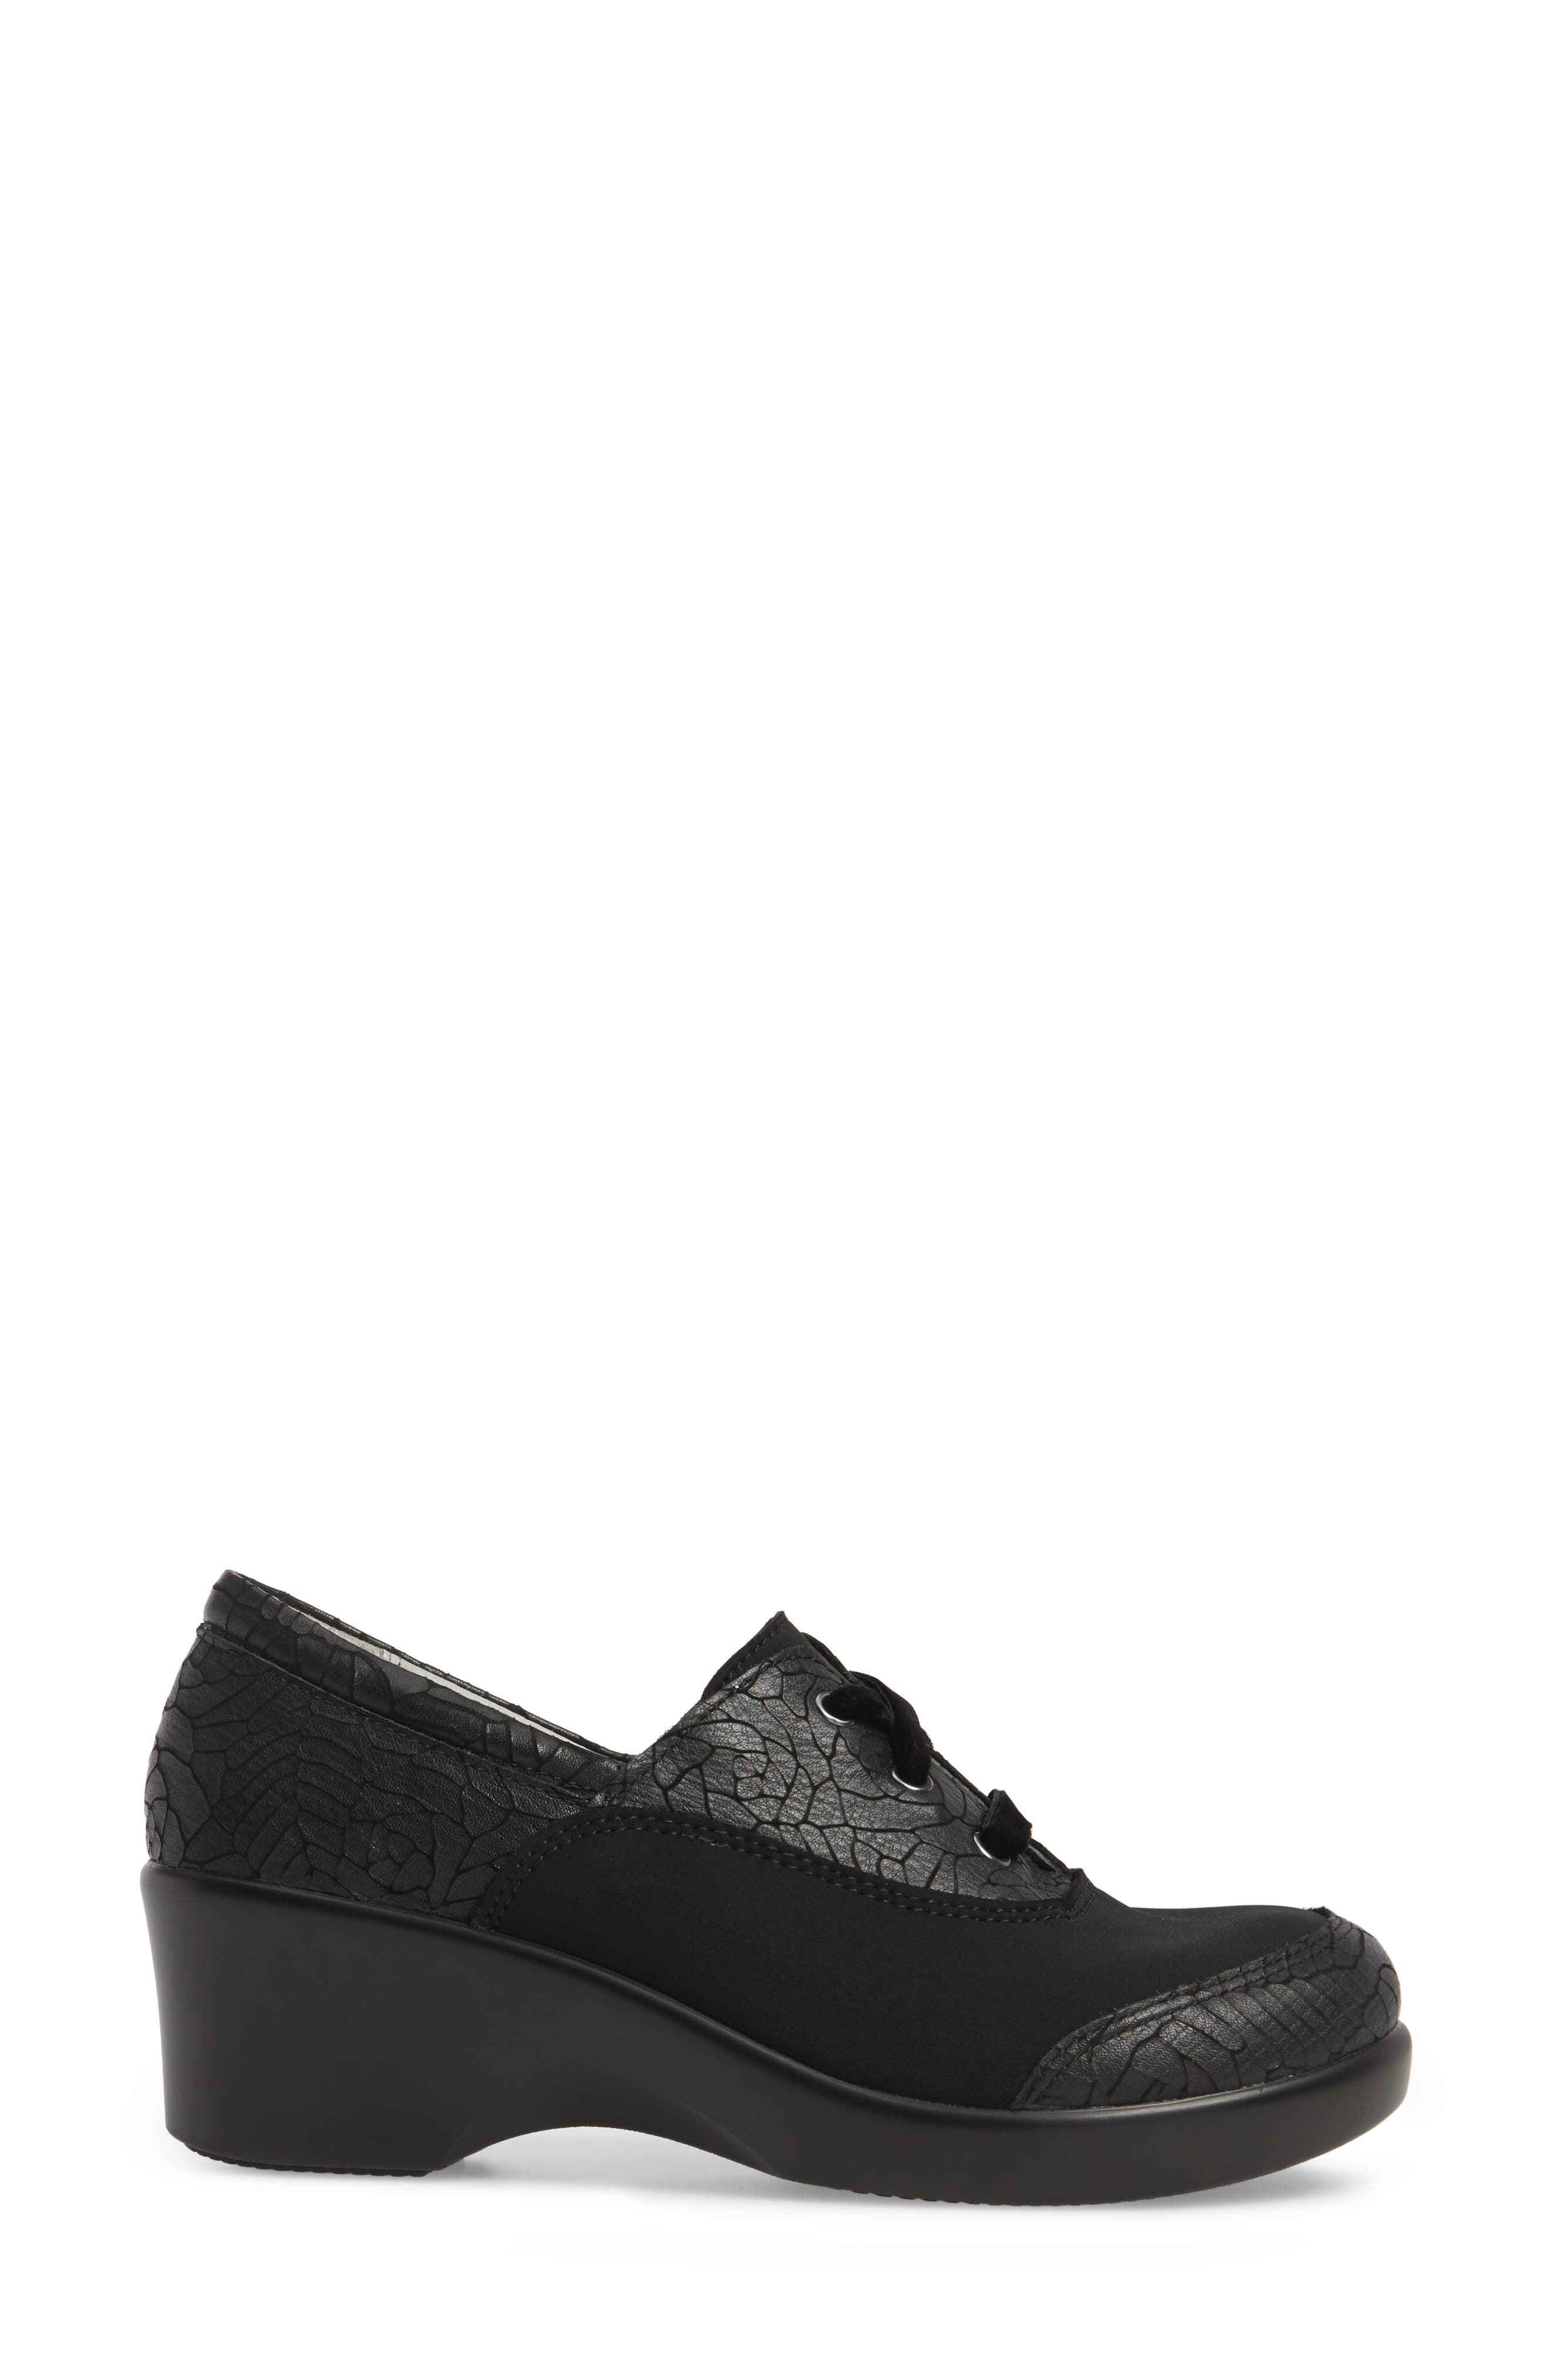 Madi Lace-Up Shoe,                             Alternate thumbnail 3, color,                             Floral Notes Leather